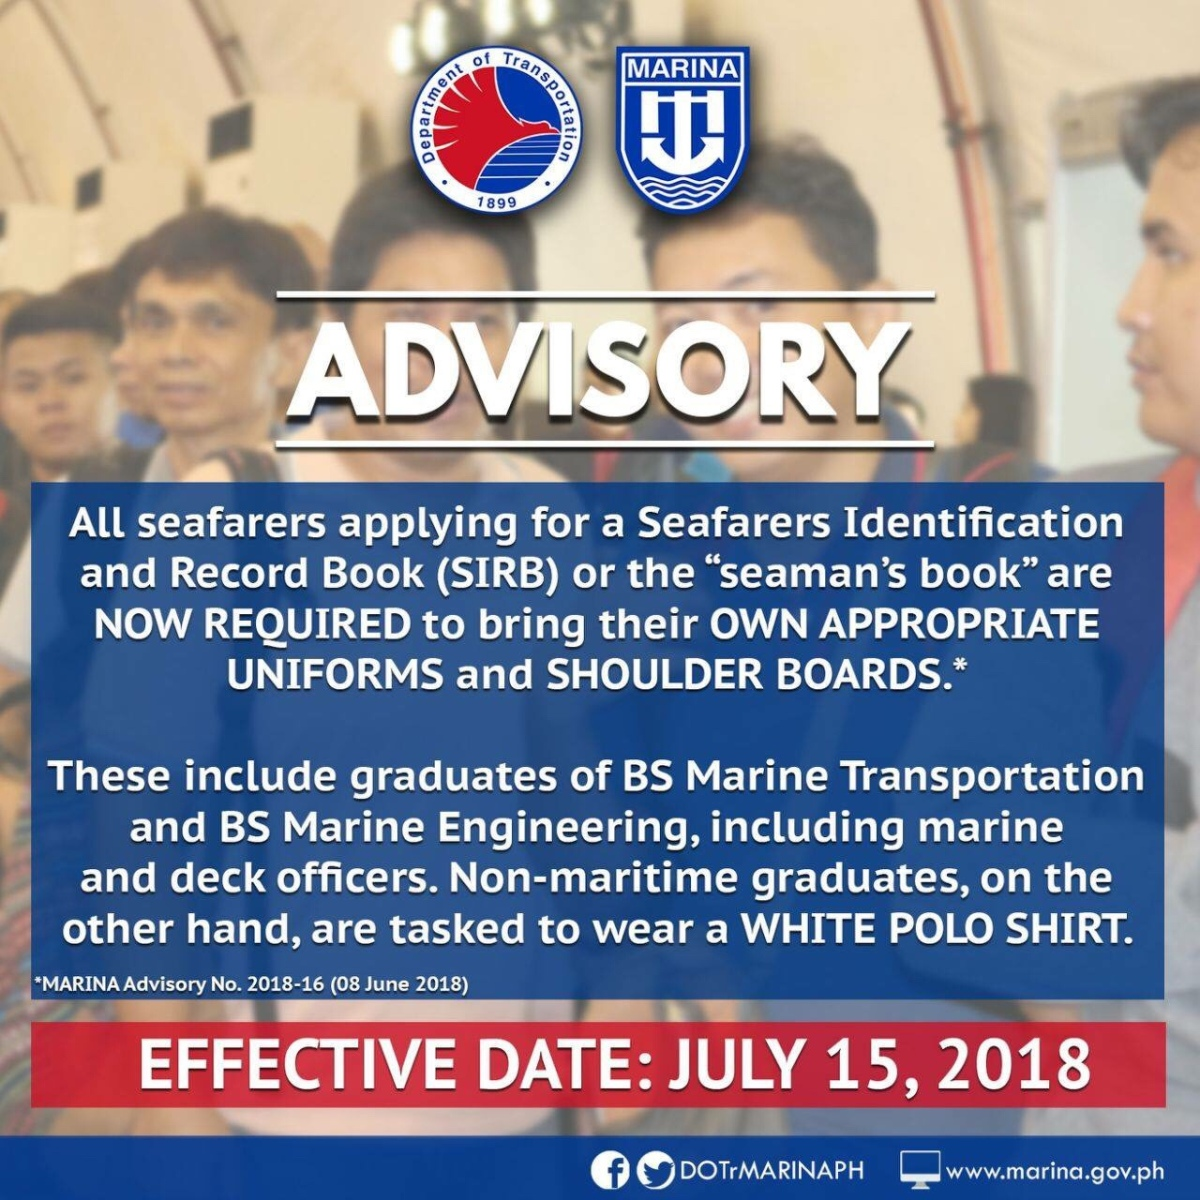 IMPORTANT ADVISORY TO ALL SEAFARERS